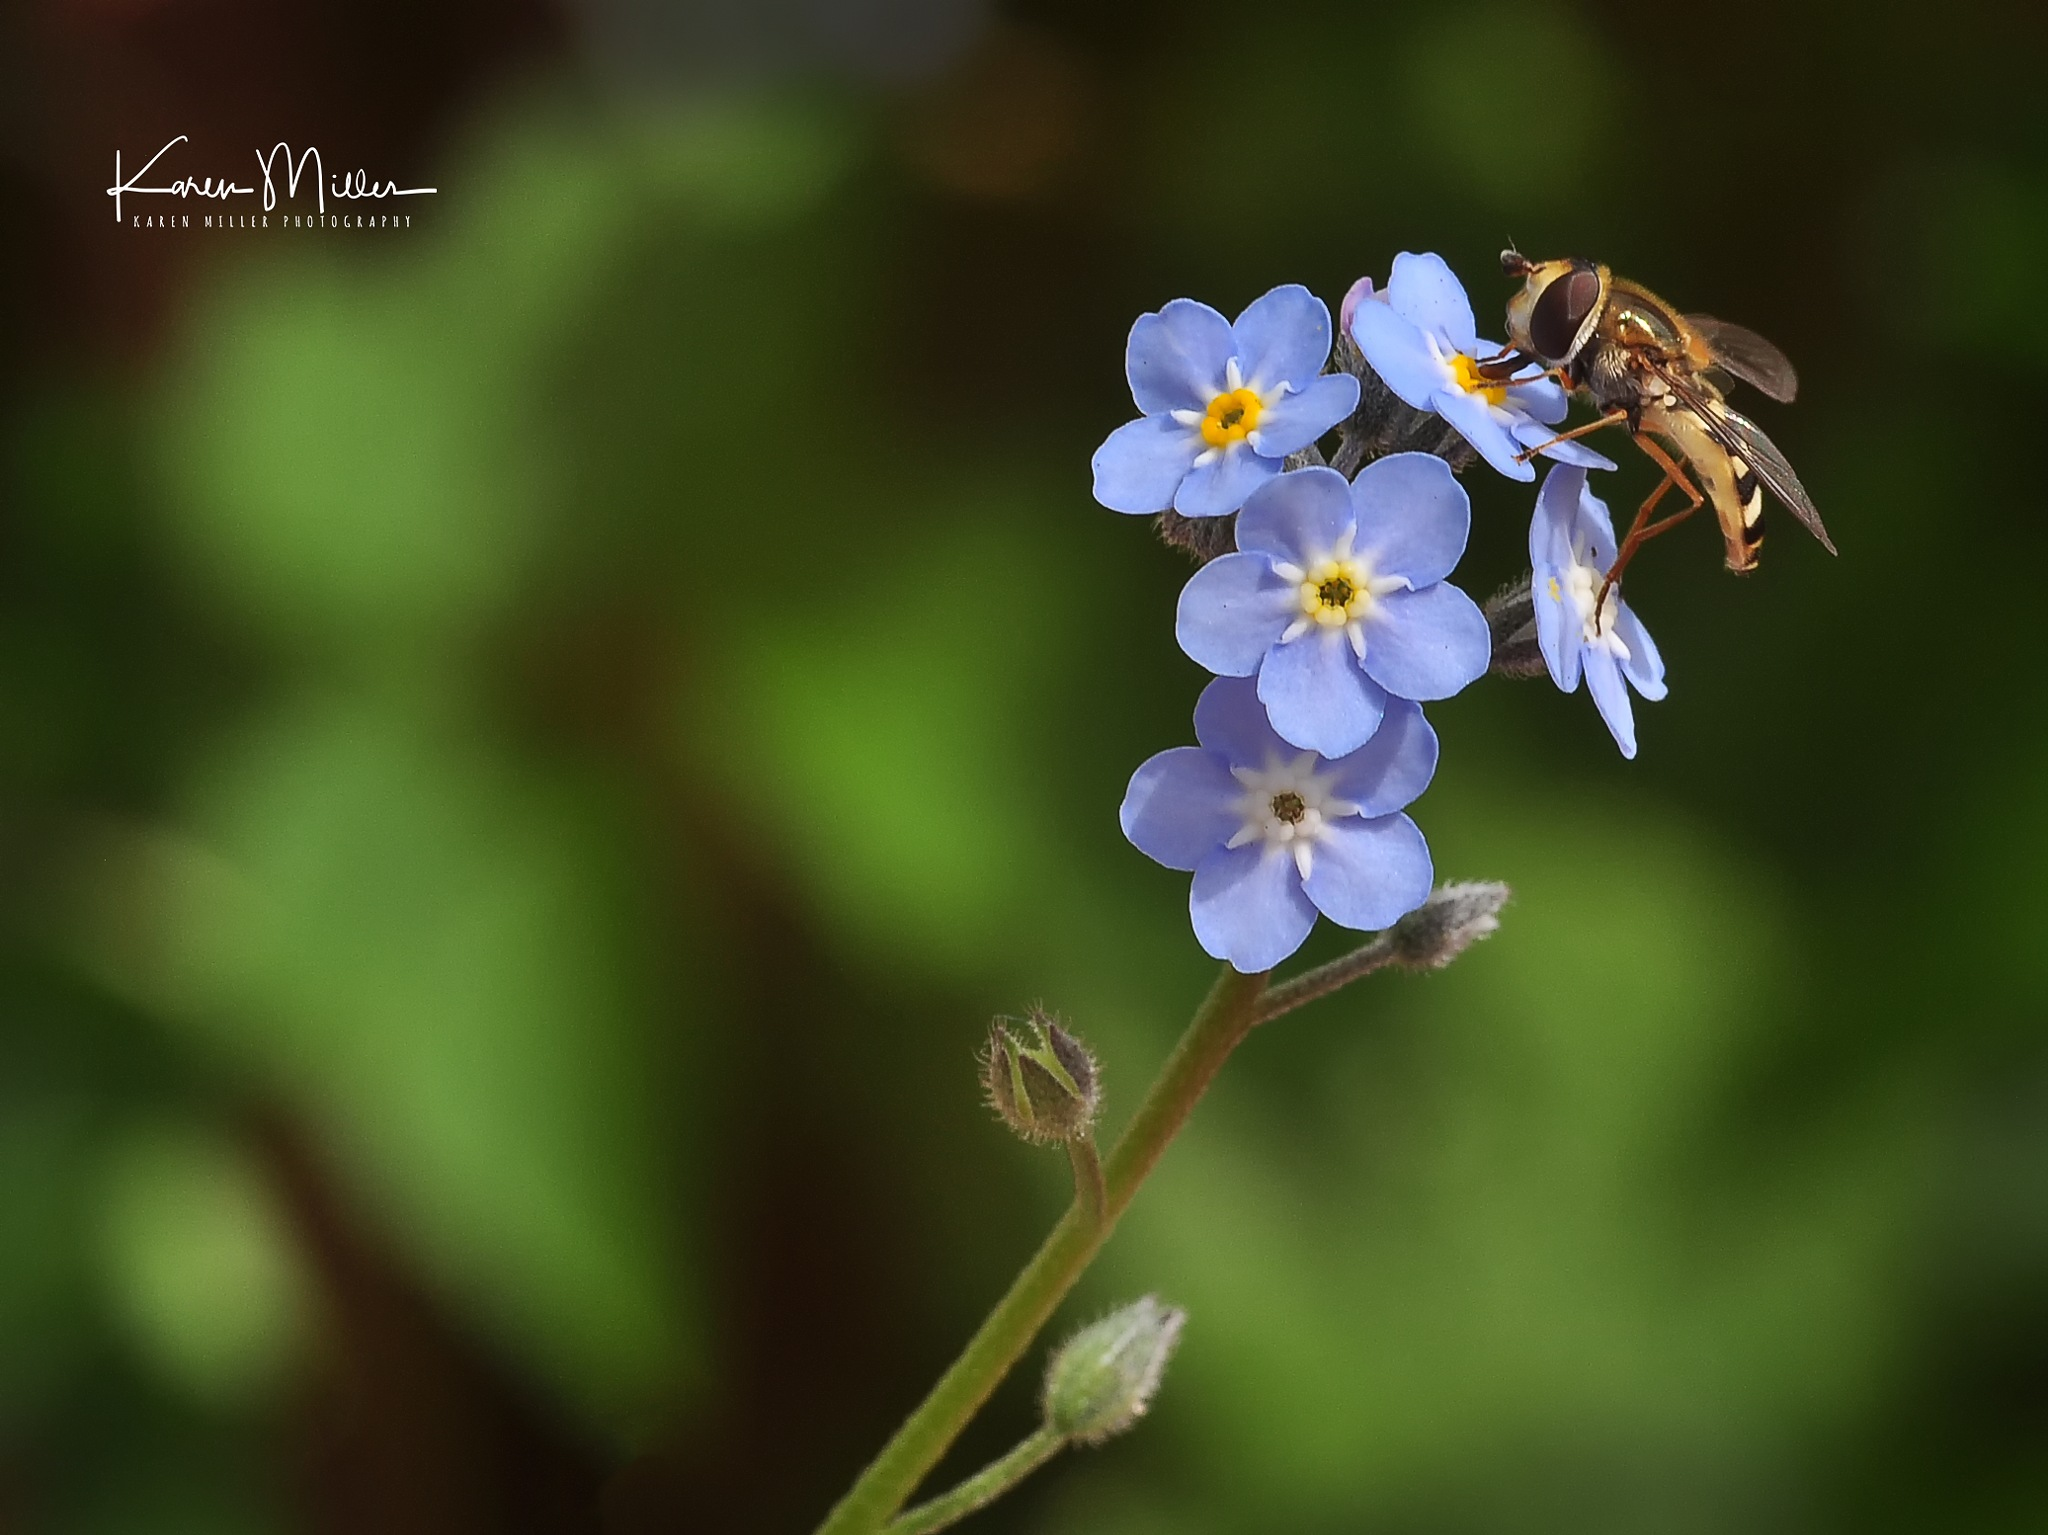 Hoverfly on Forget-Me-Not by kfjmillerphoto